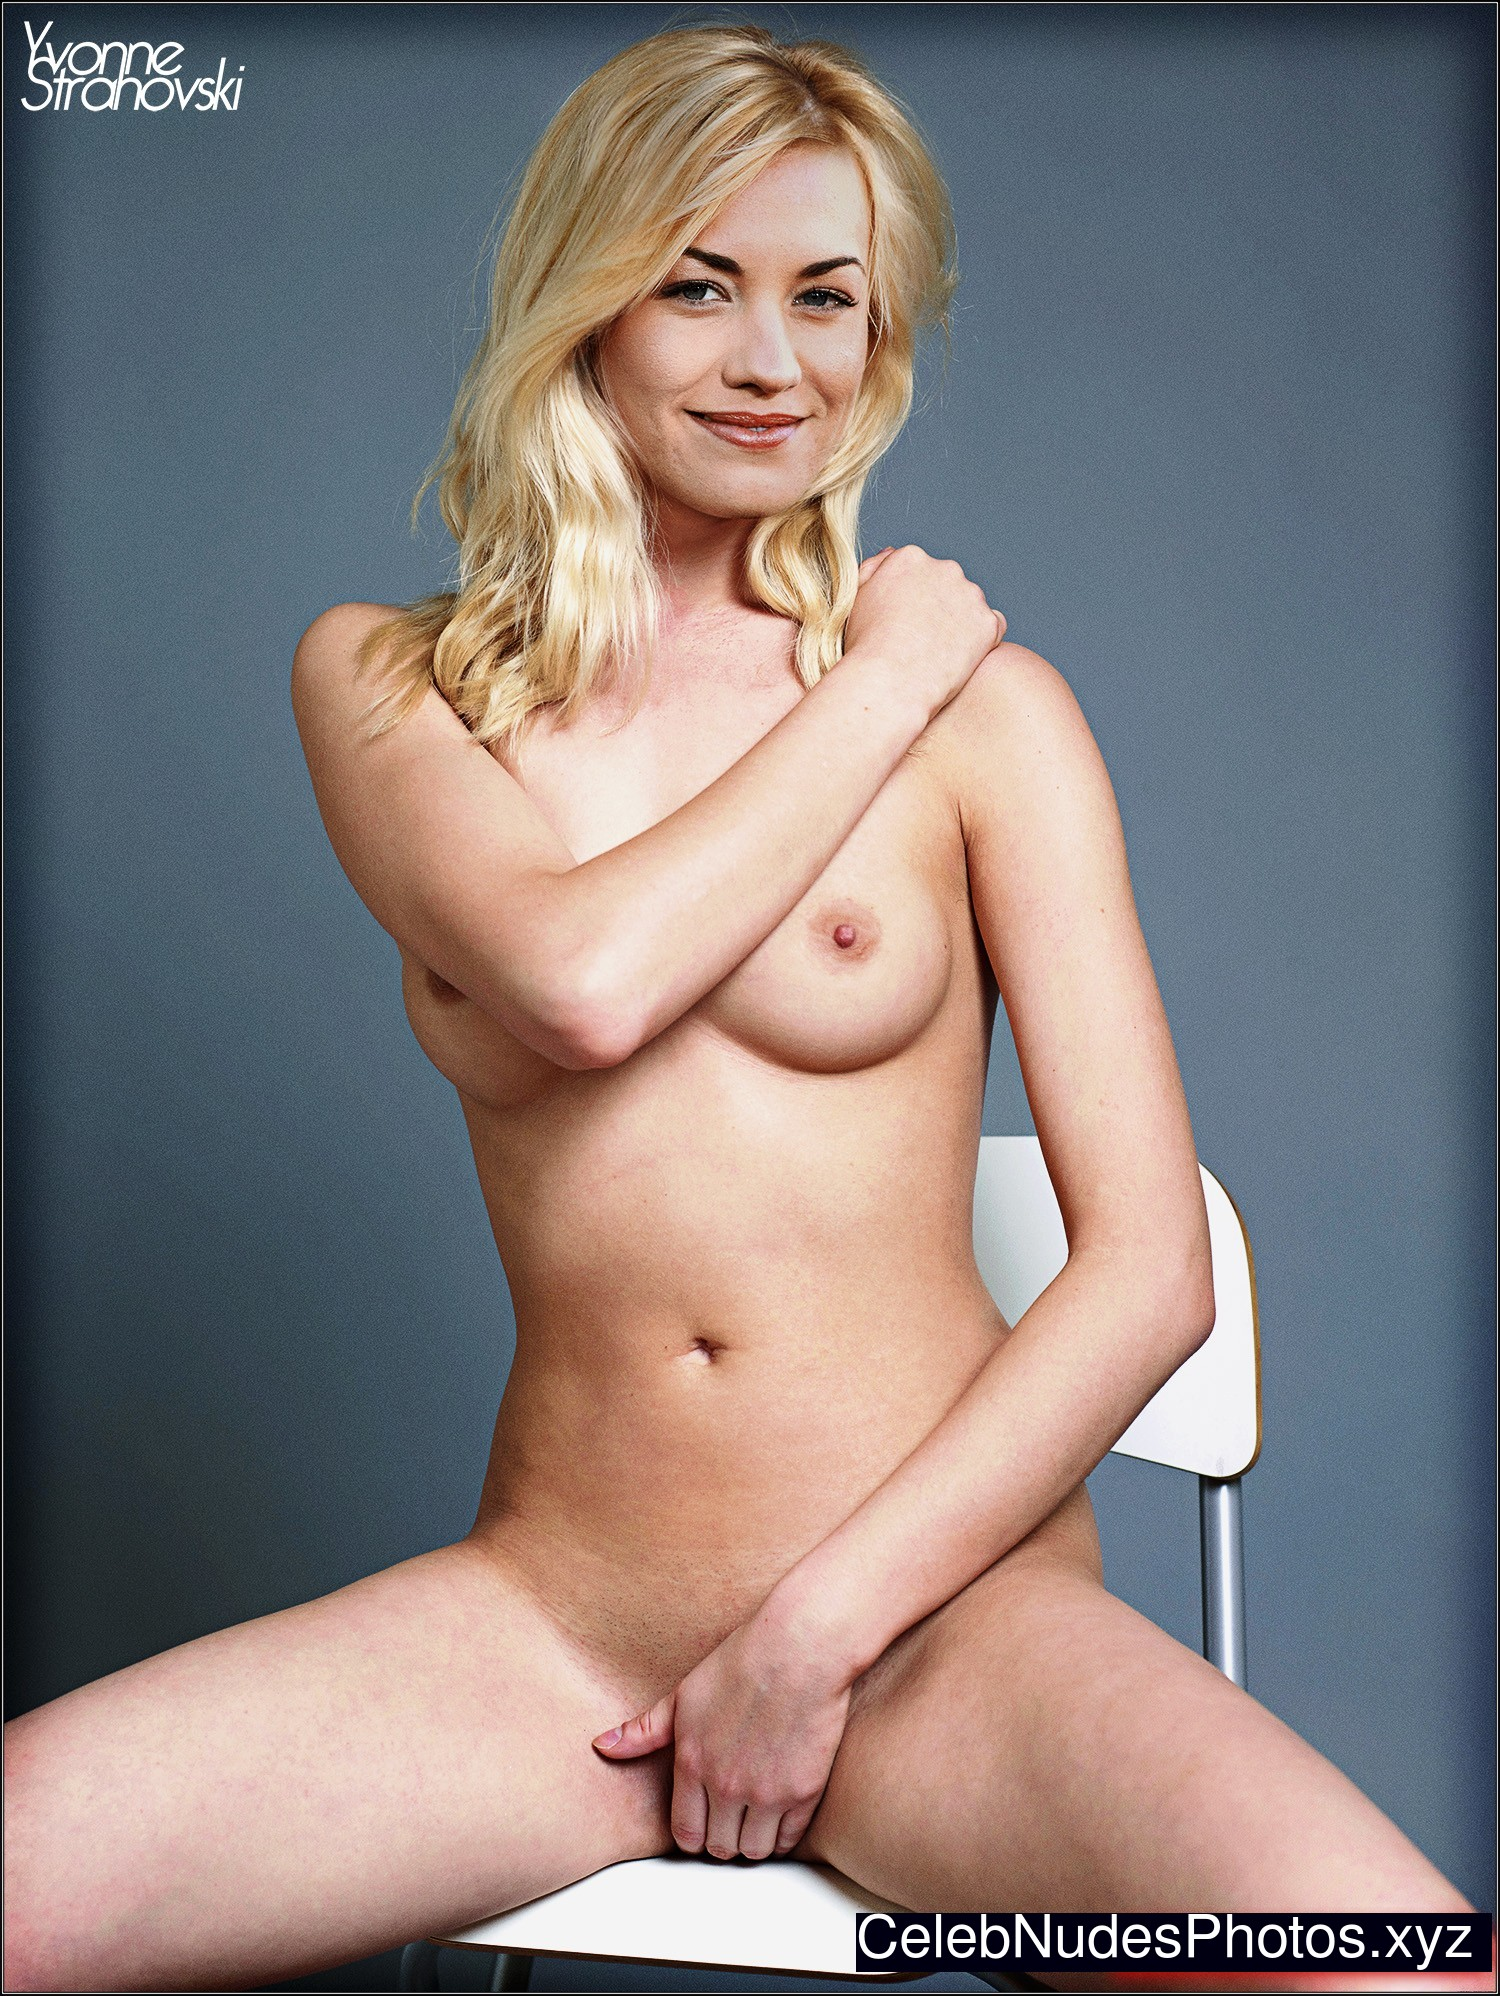 Real naked celebrities